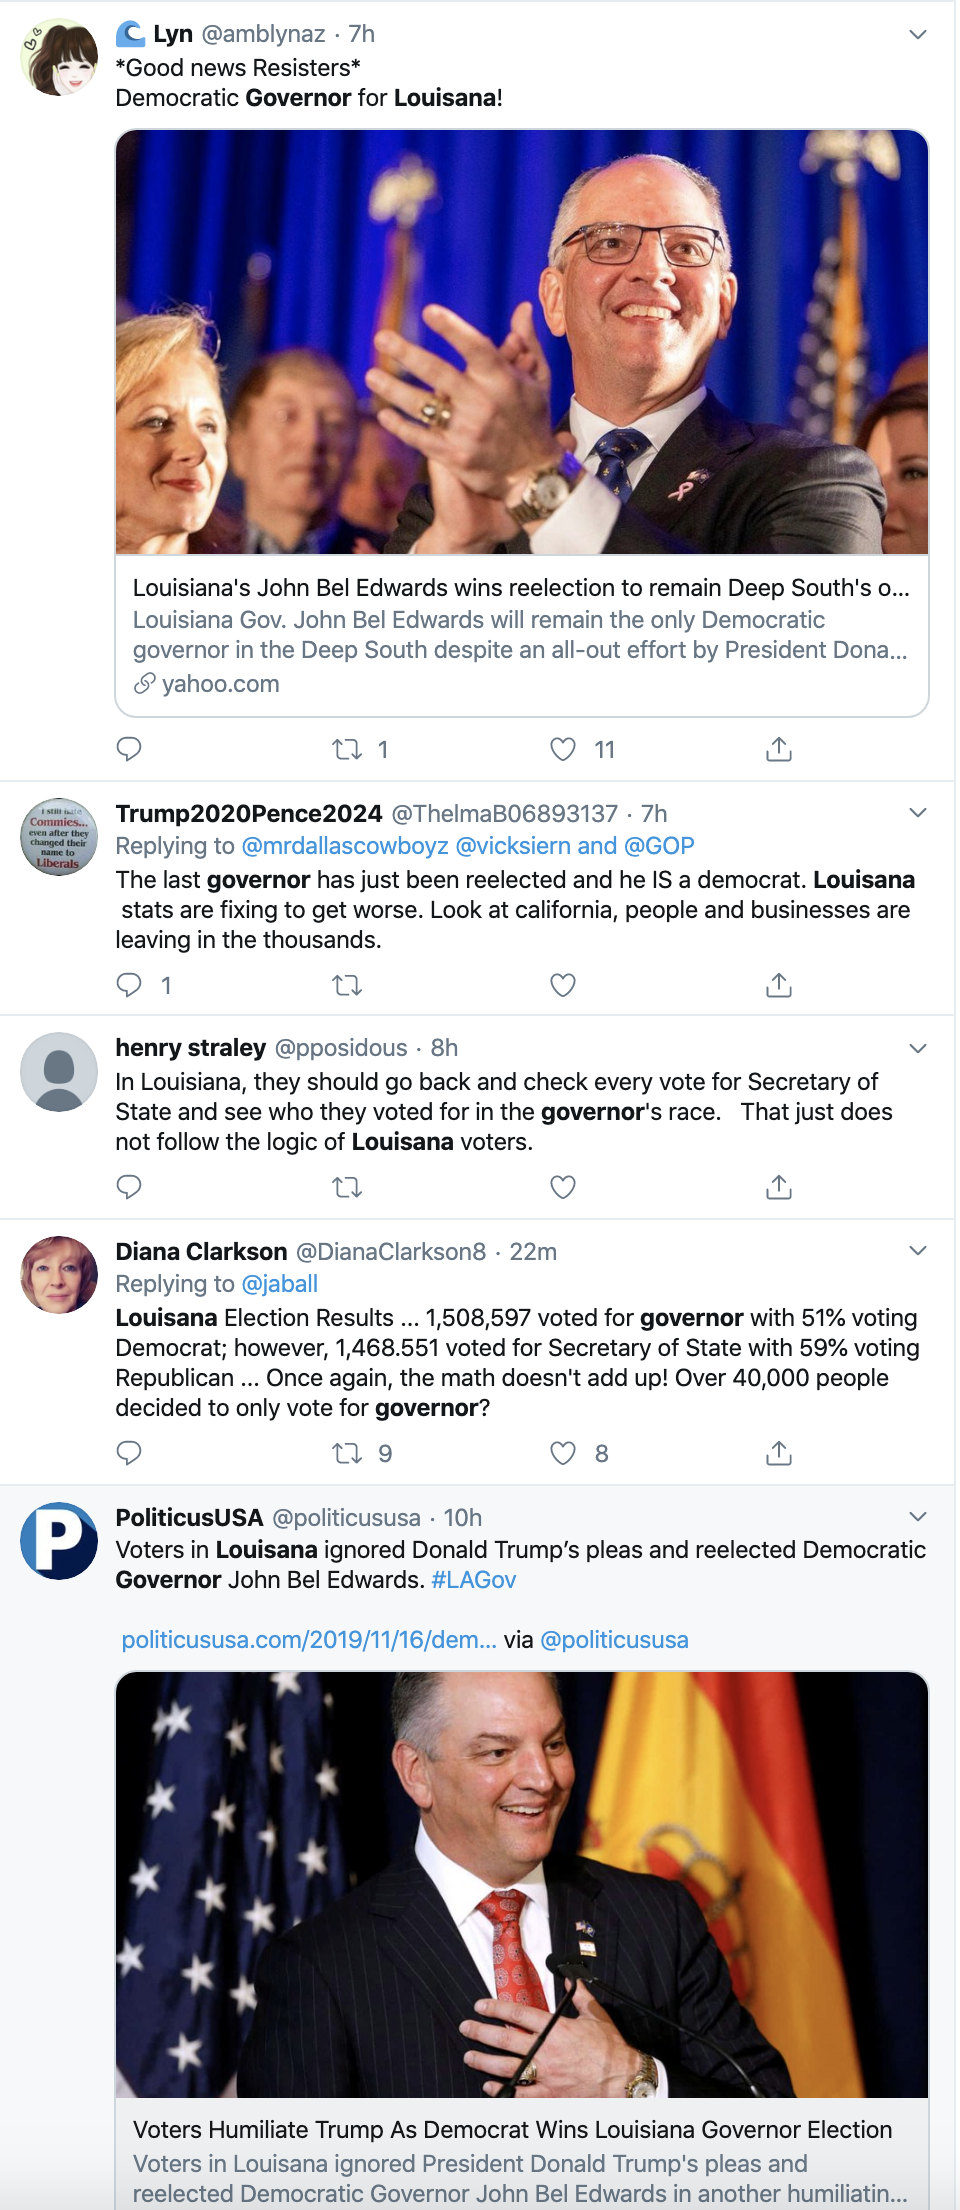 Screen-Shot-2019-11-17-at-8.16.59-AM Thousands Troll Trump Over Louisiana Governor Election Loss Domestic Policy Donald Trump Election 2018 Election 2020 Featured Politics Top Stories